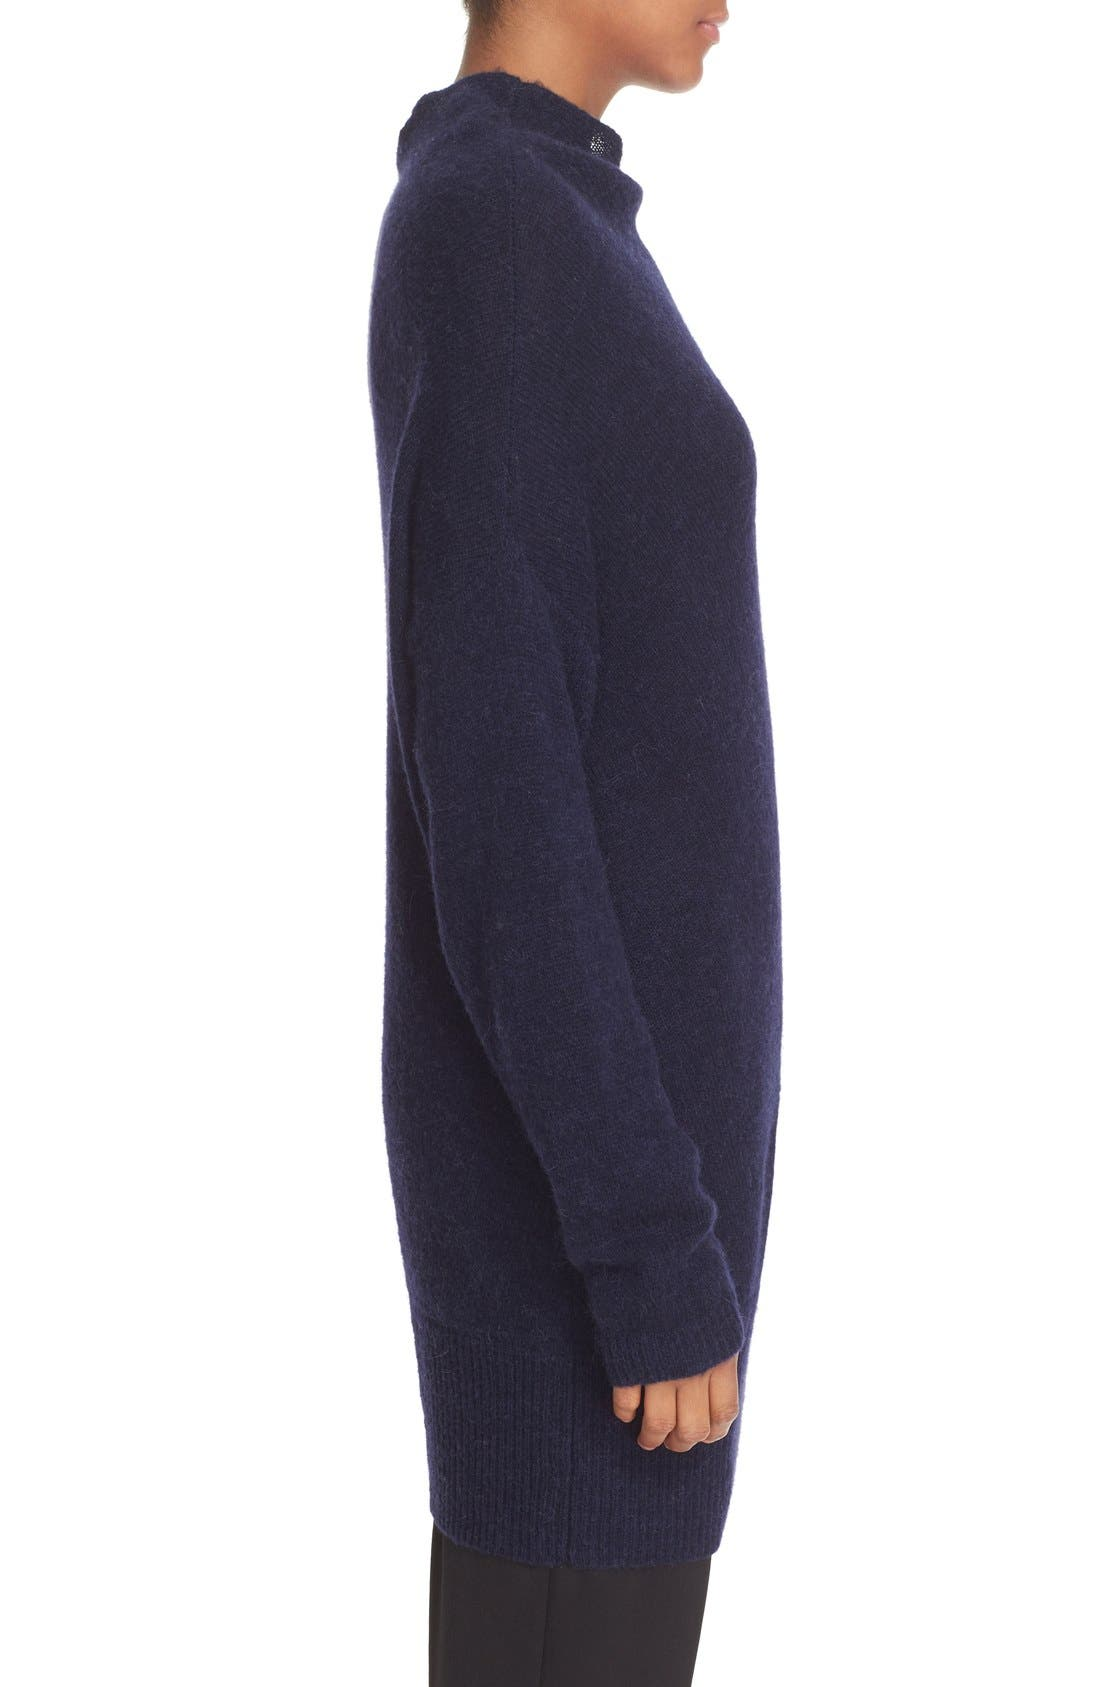 Asymmetrical Neck Sweater,                             Alternate thumbnail 3, color,                             401